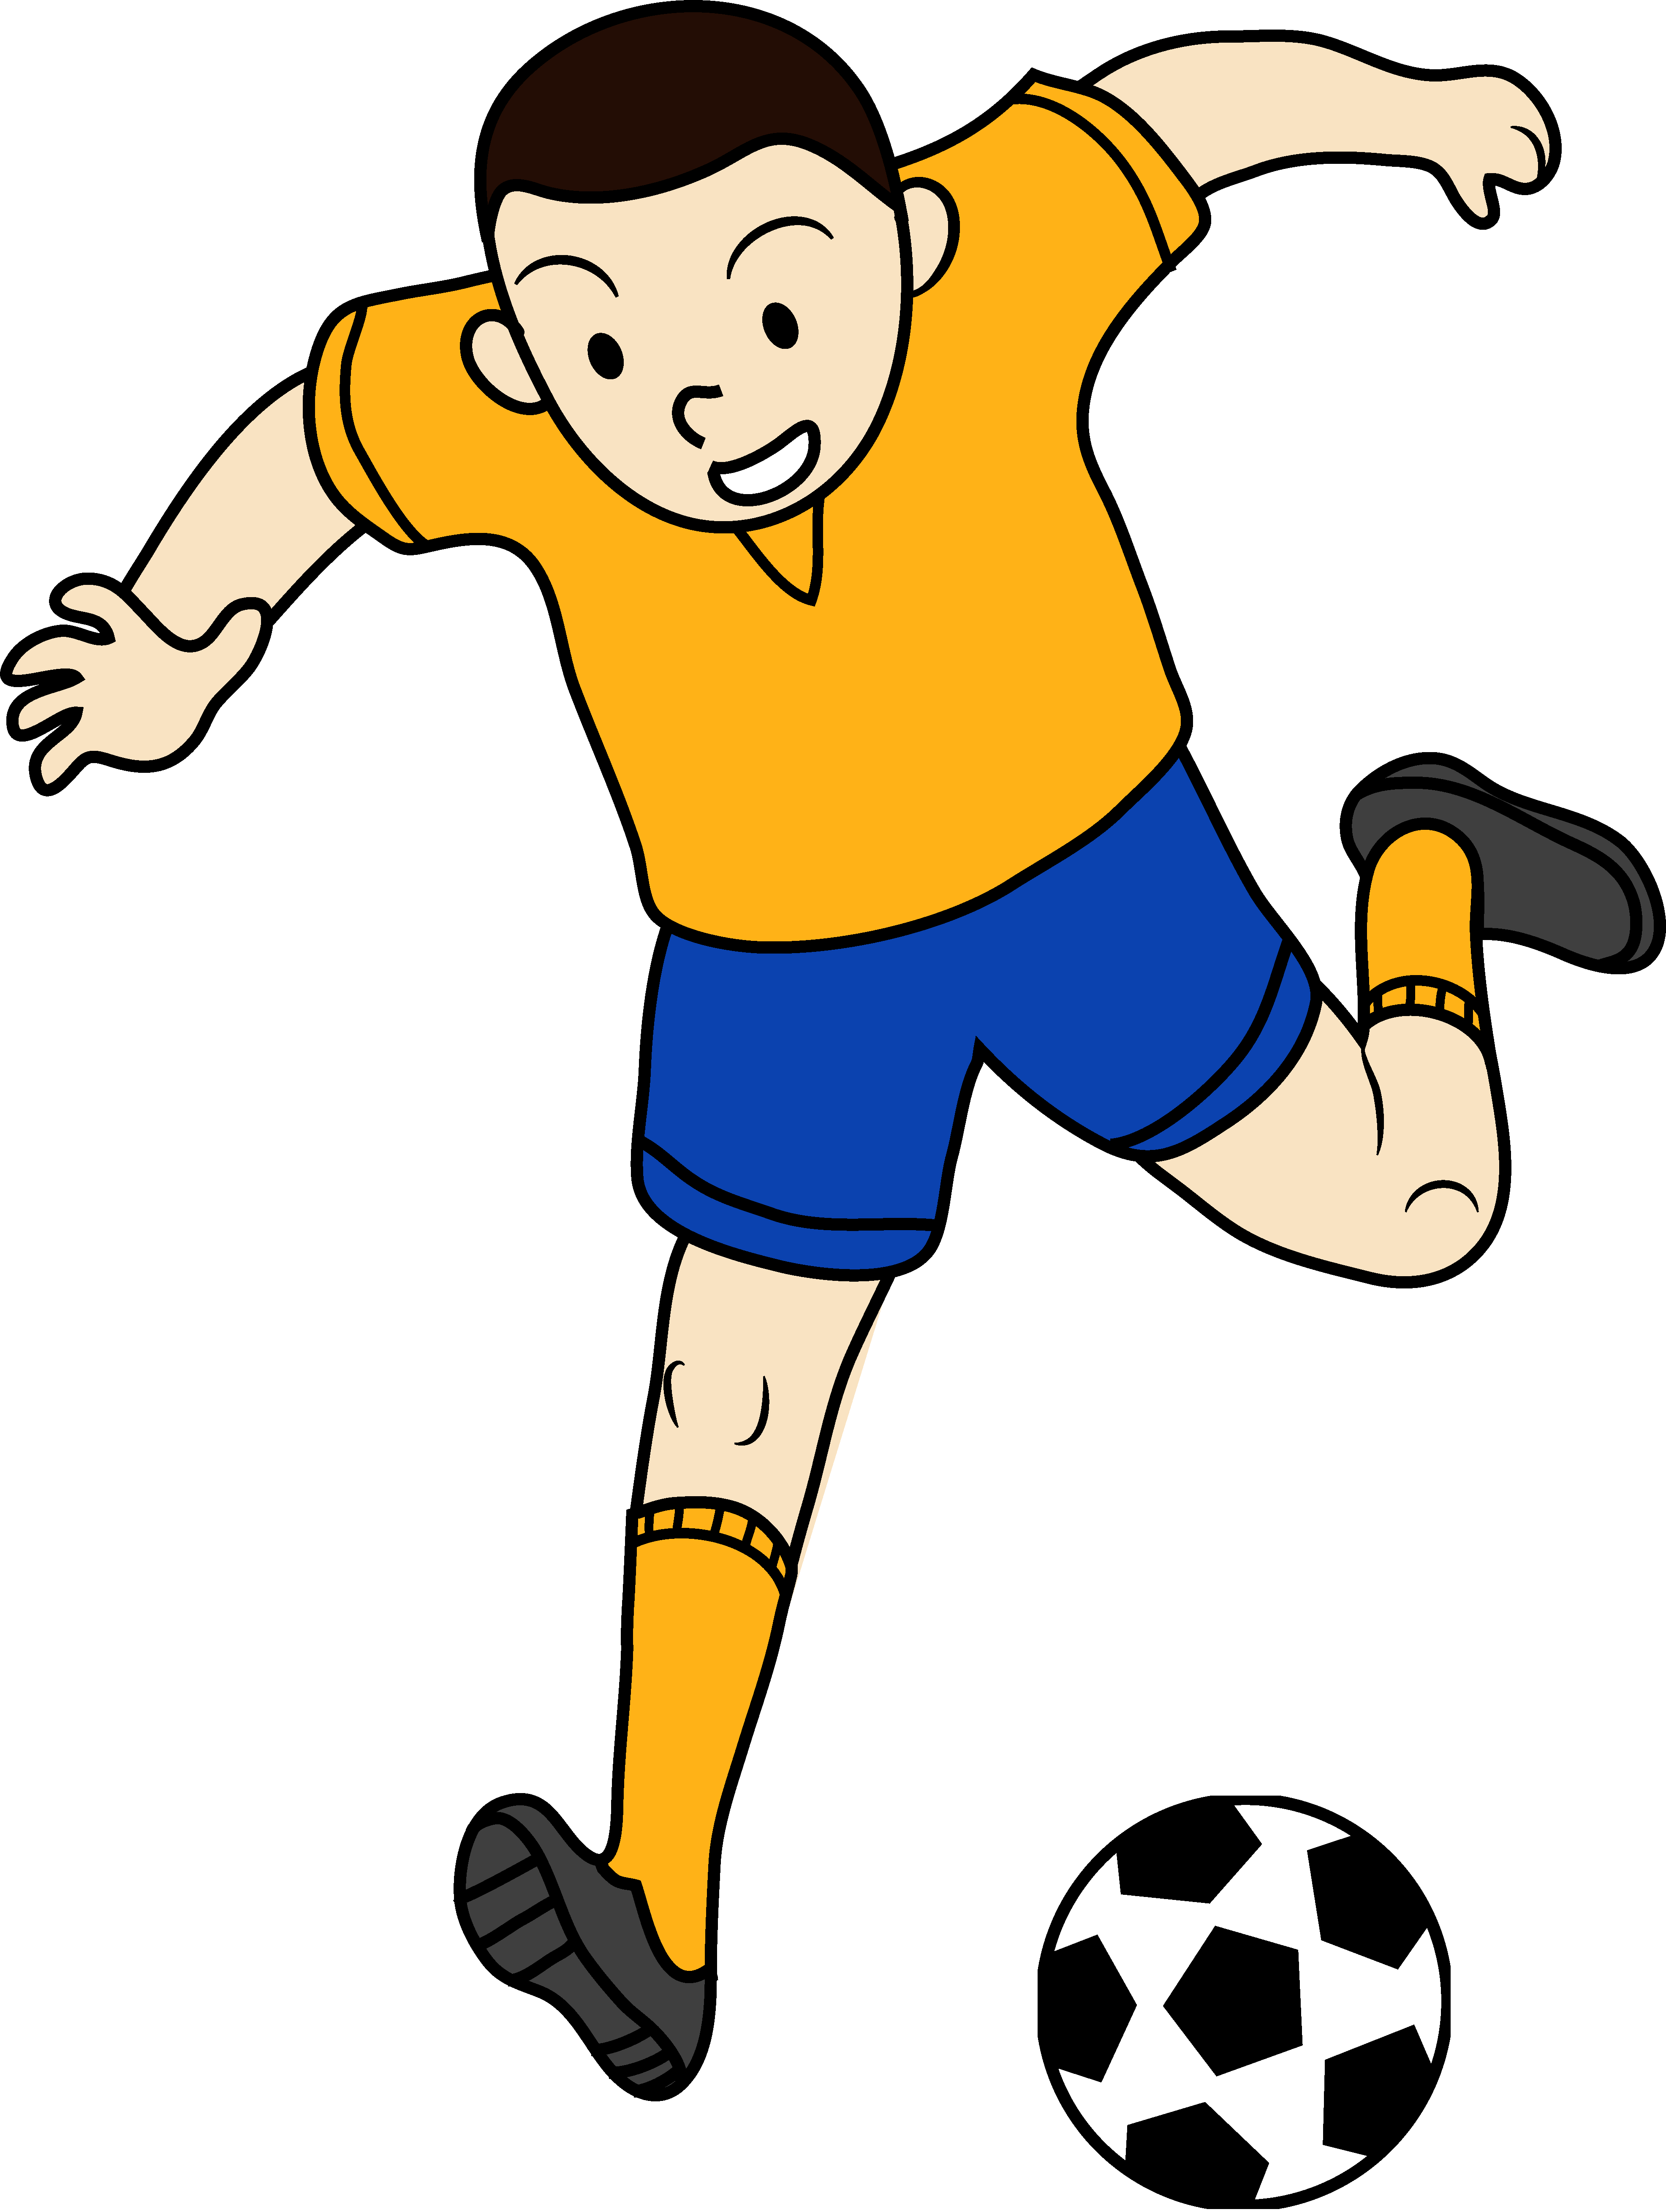 Free Play Sports Cliparts, Download Free Clip Art, Free Clip.